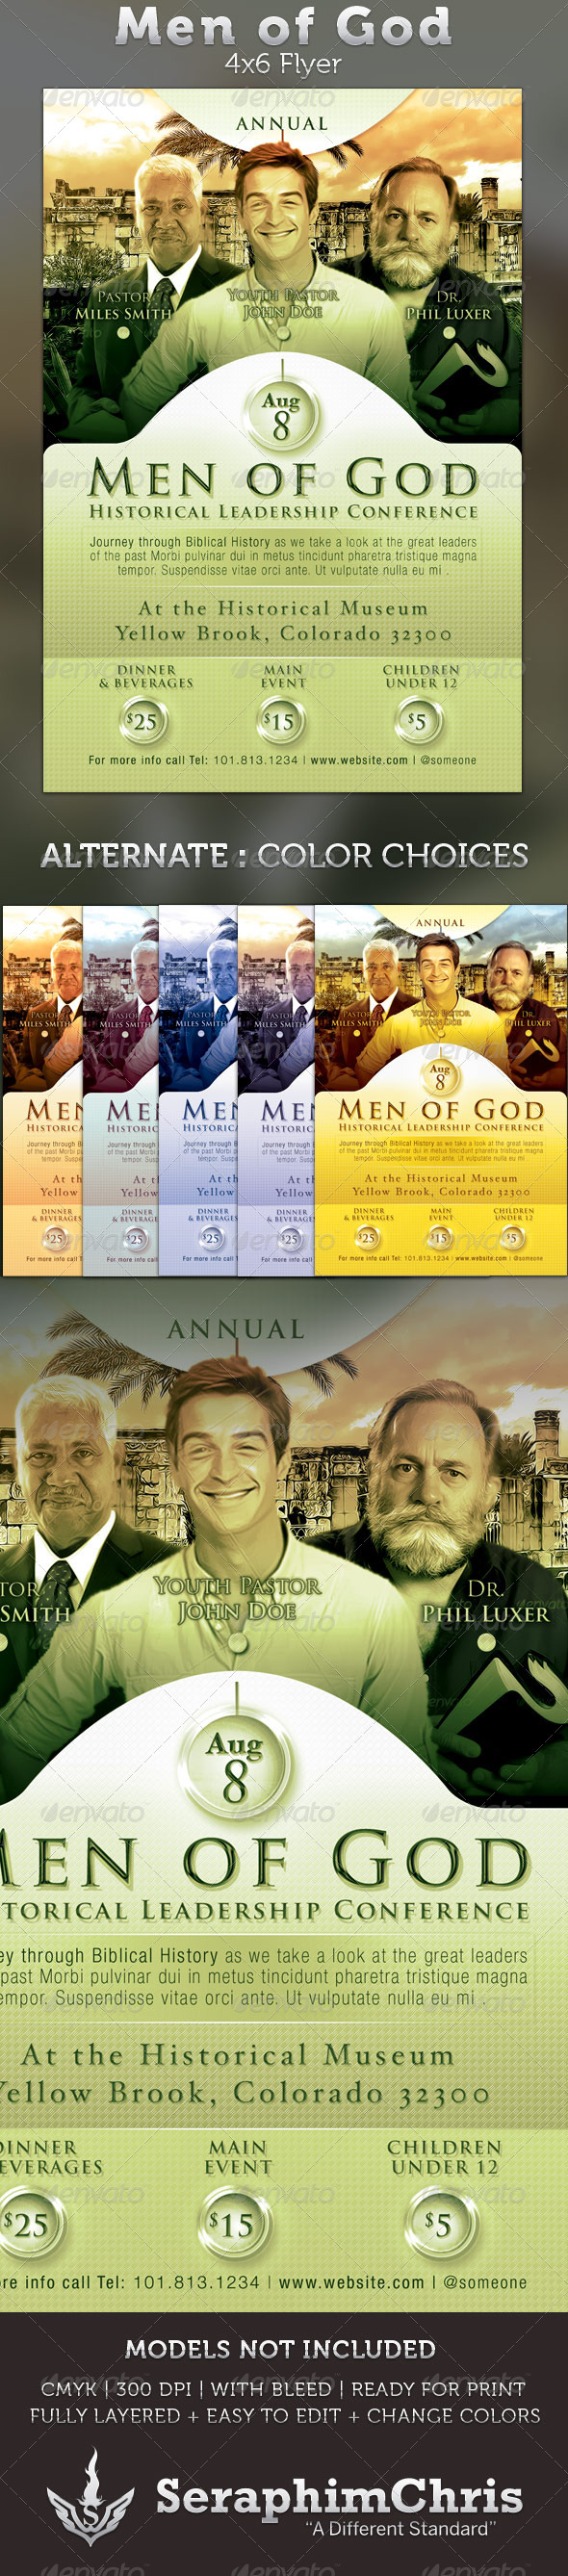 GraphicRiver Men of God 4x6 Leadership Conference Flyer 2423850